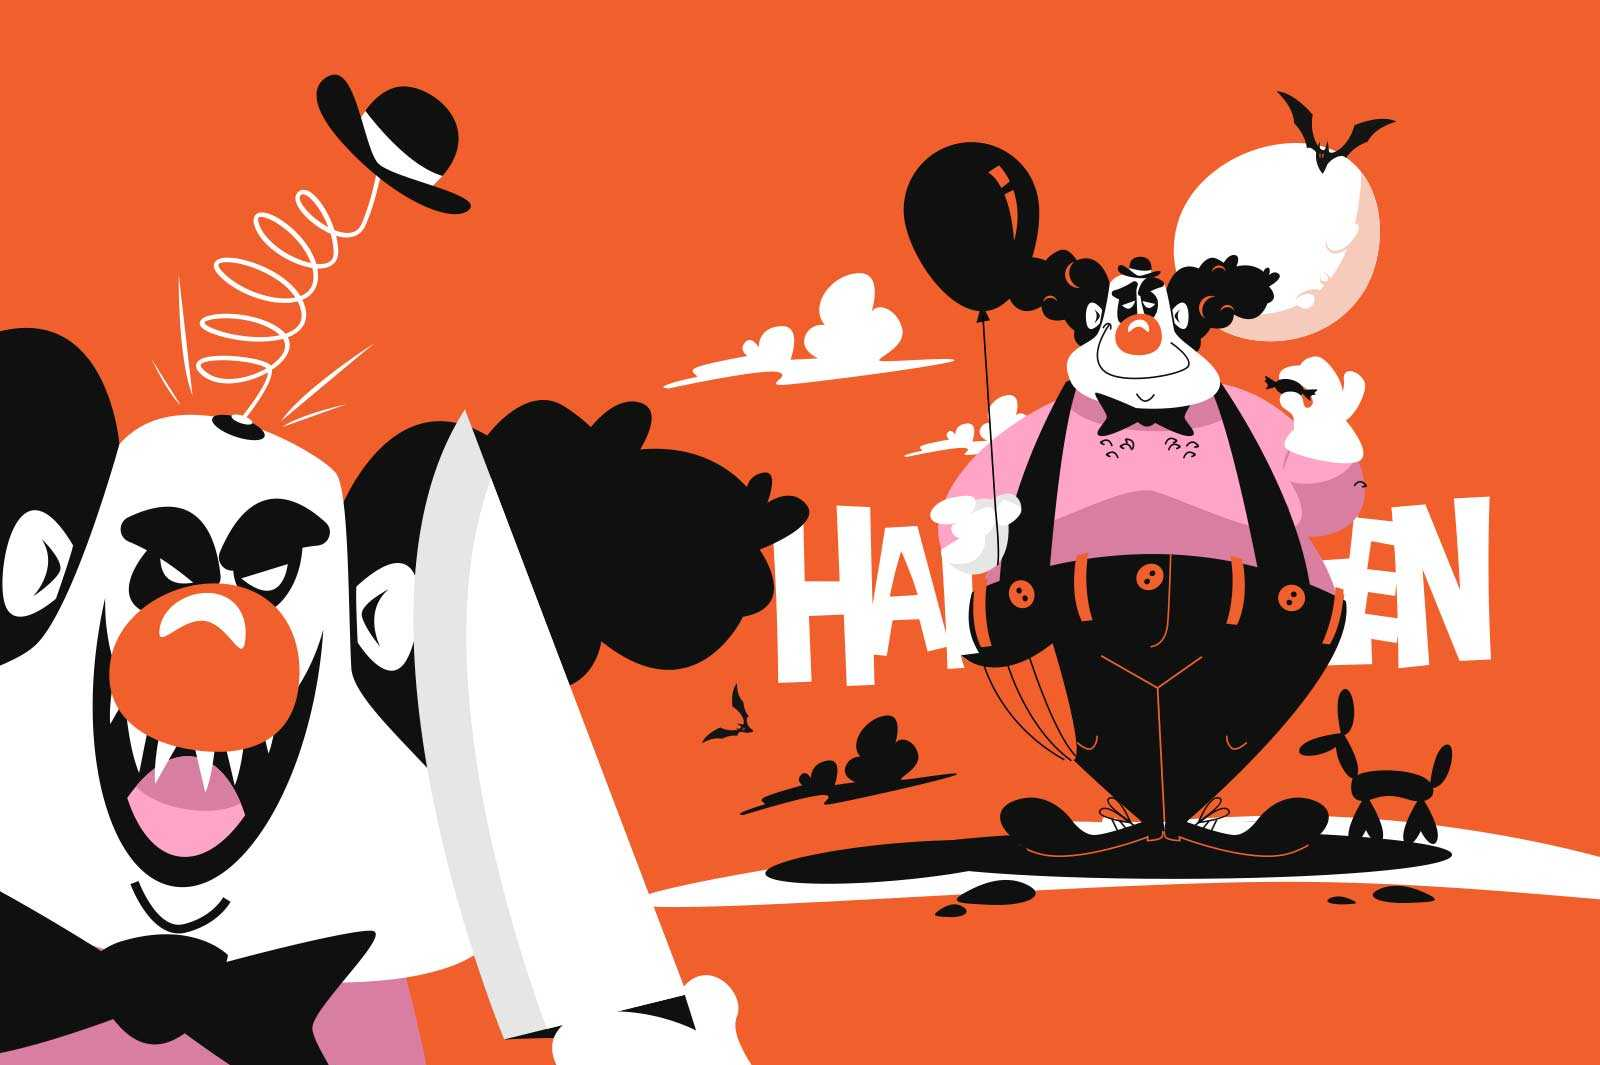 Happy and angry clown vector illustration. Joker in black and white costume with balloon and knife flat style. Autumn holiday and happy halloween concept. Isolated on orange background